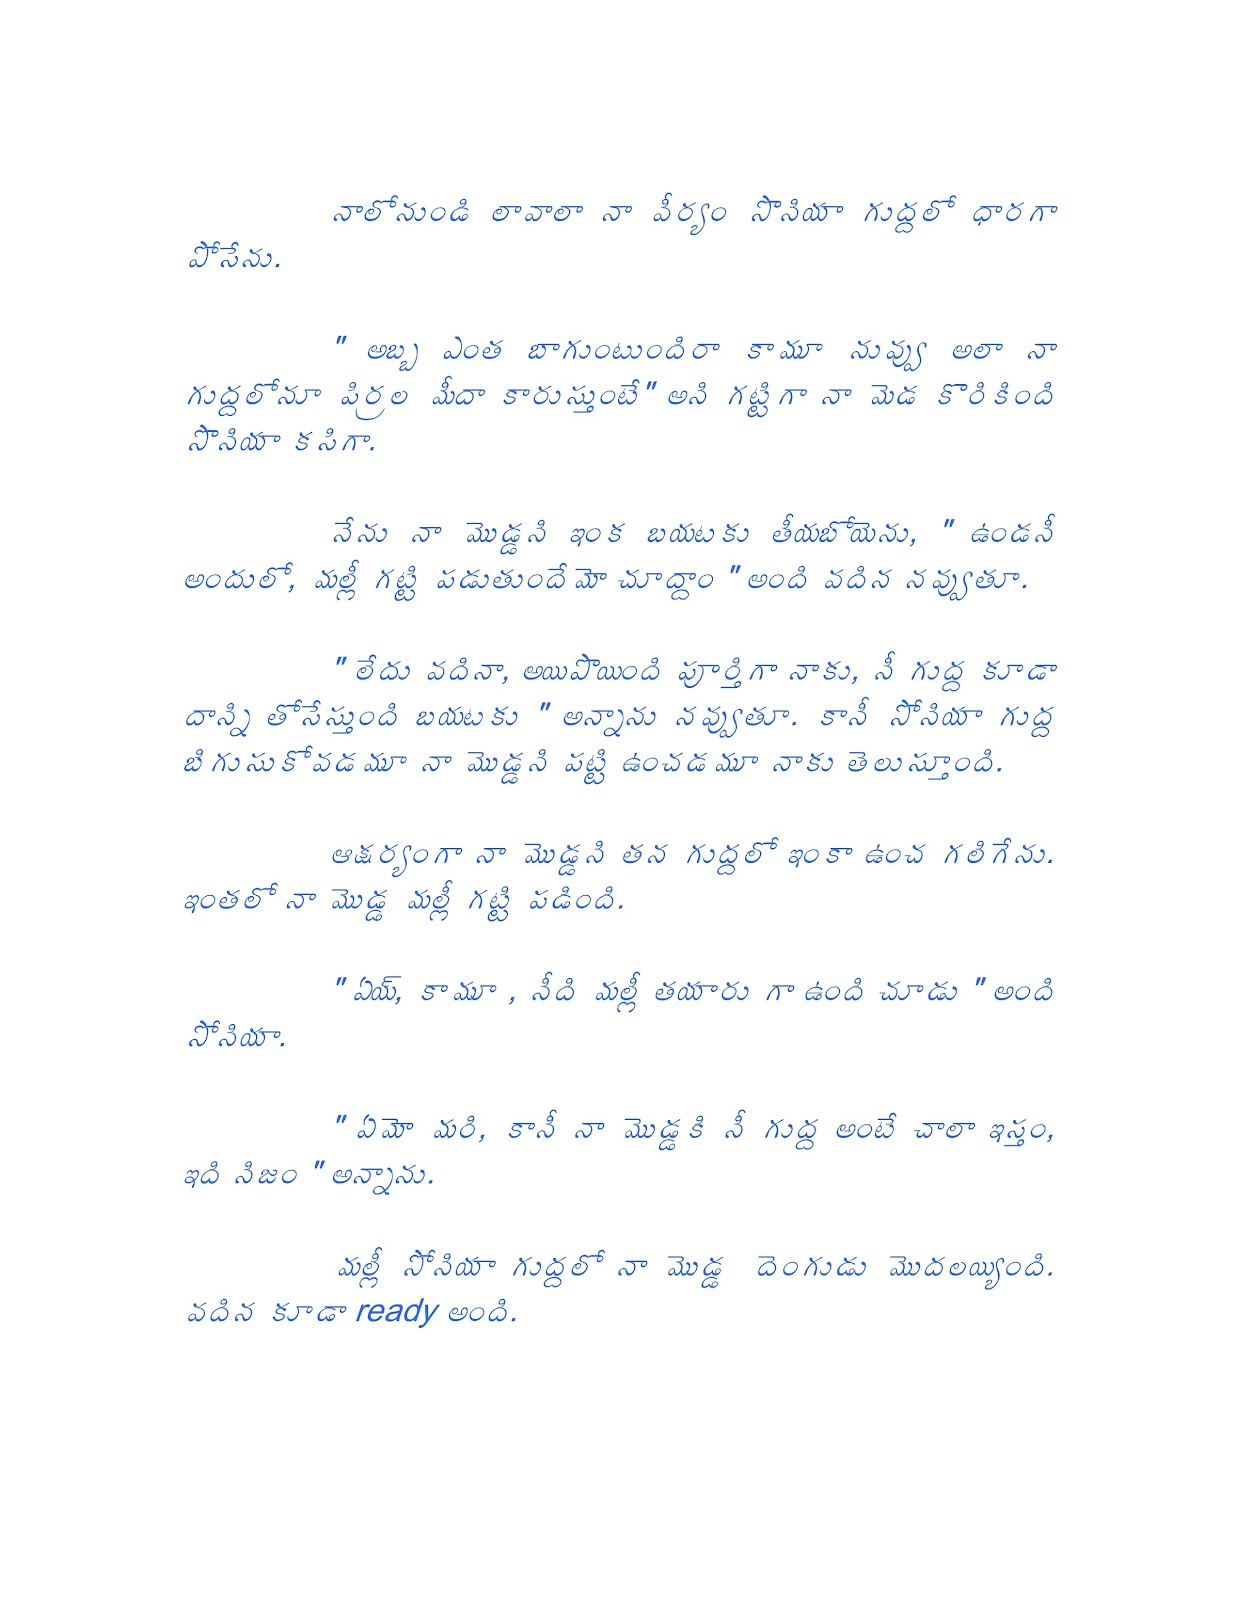 telugu thesis blog Crital essay thank you thank you what a handsome pair f scott fitzgerald essays for making this popular blog ghostwriter website for phd essay and posting it popular.